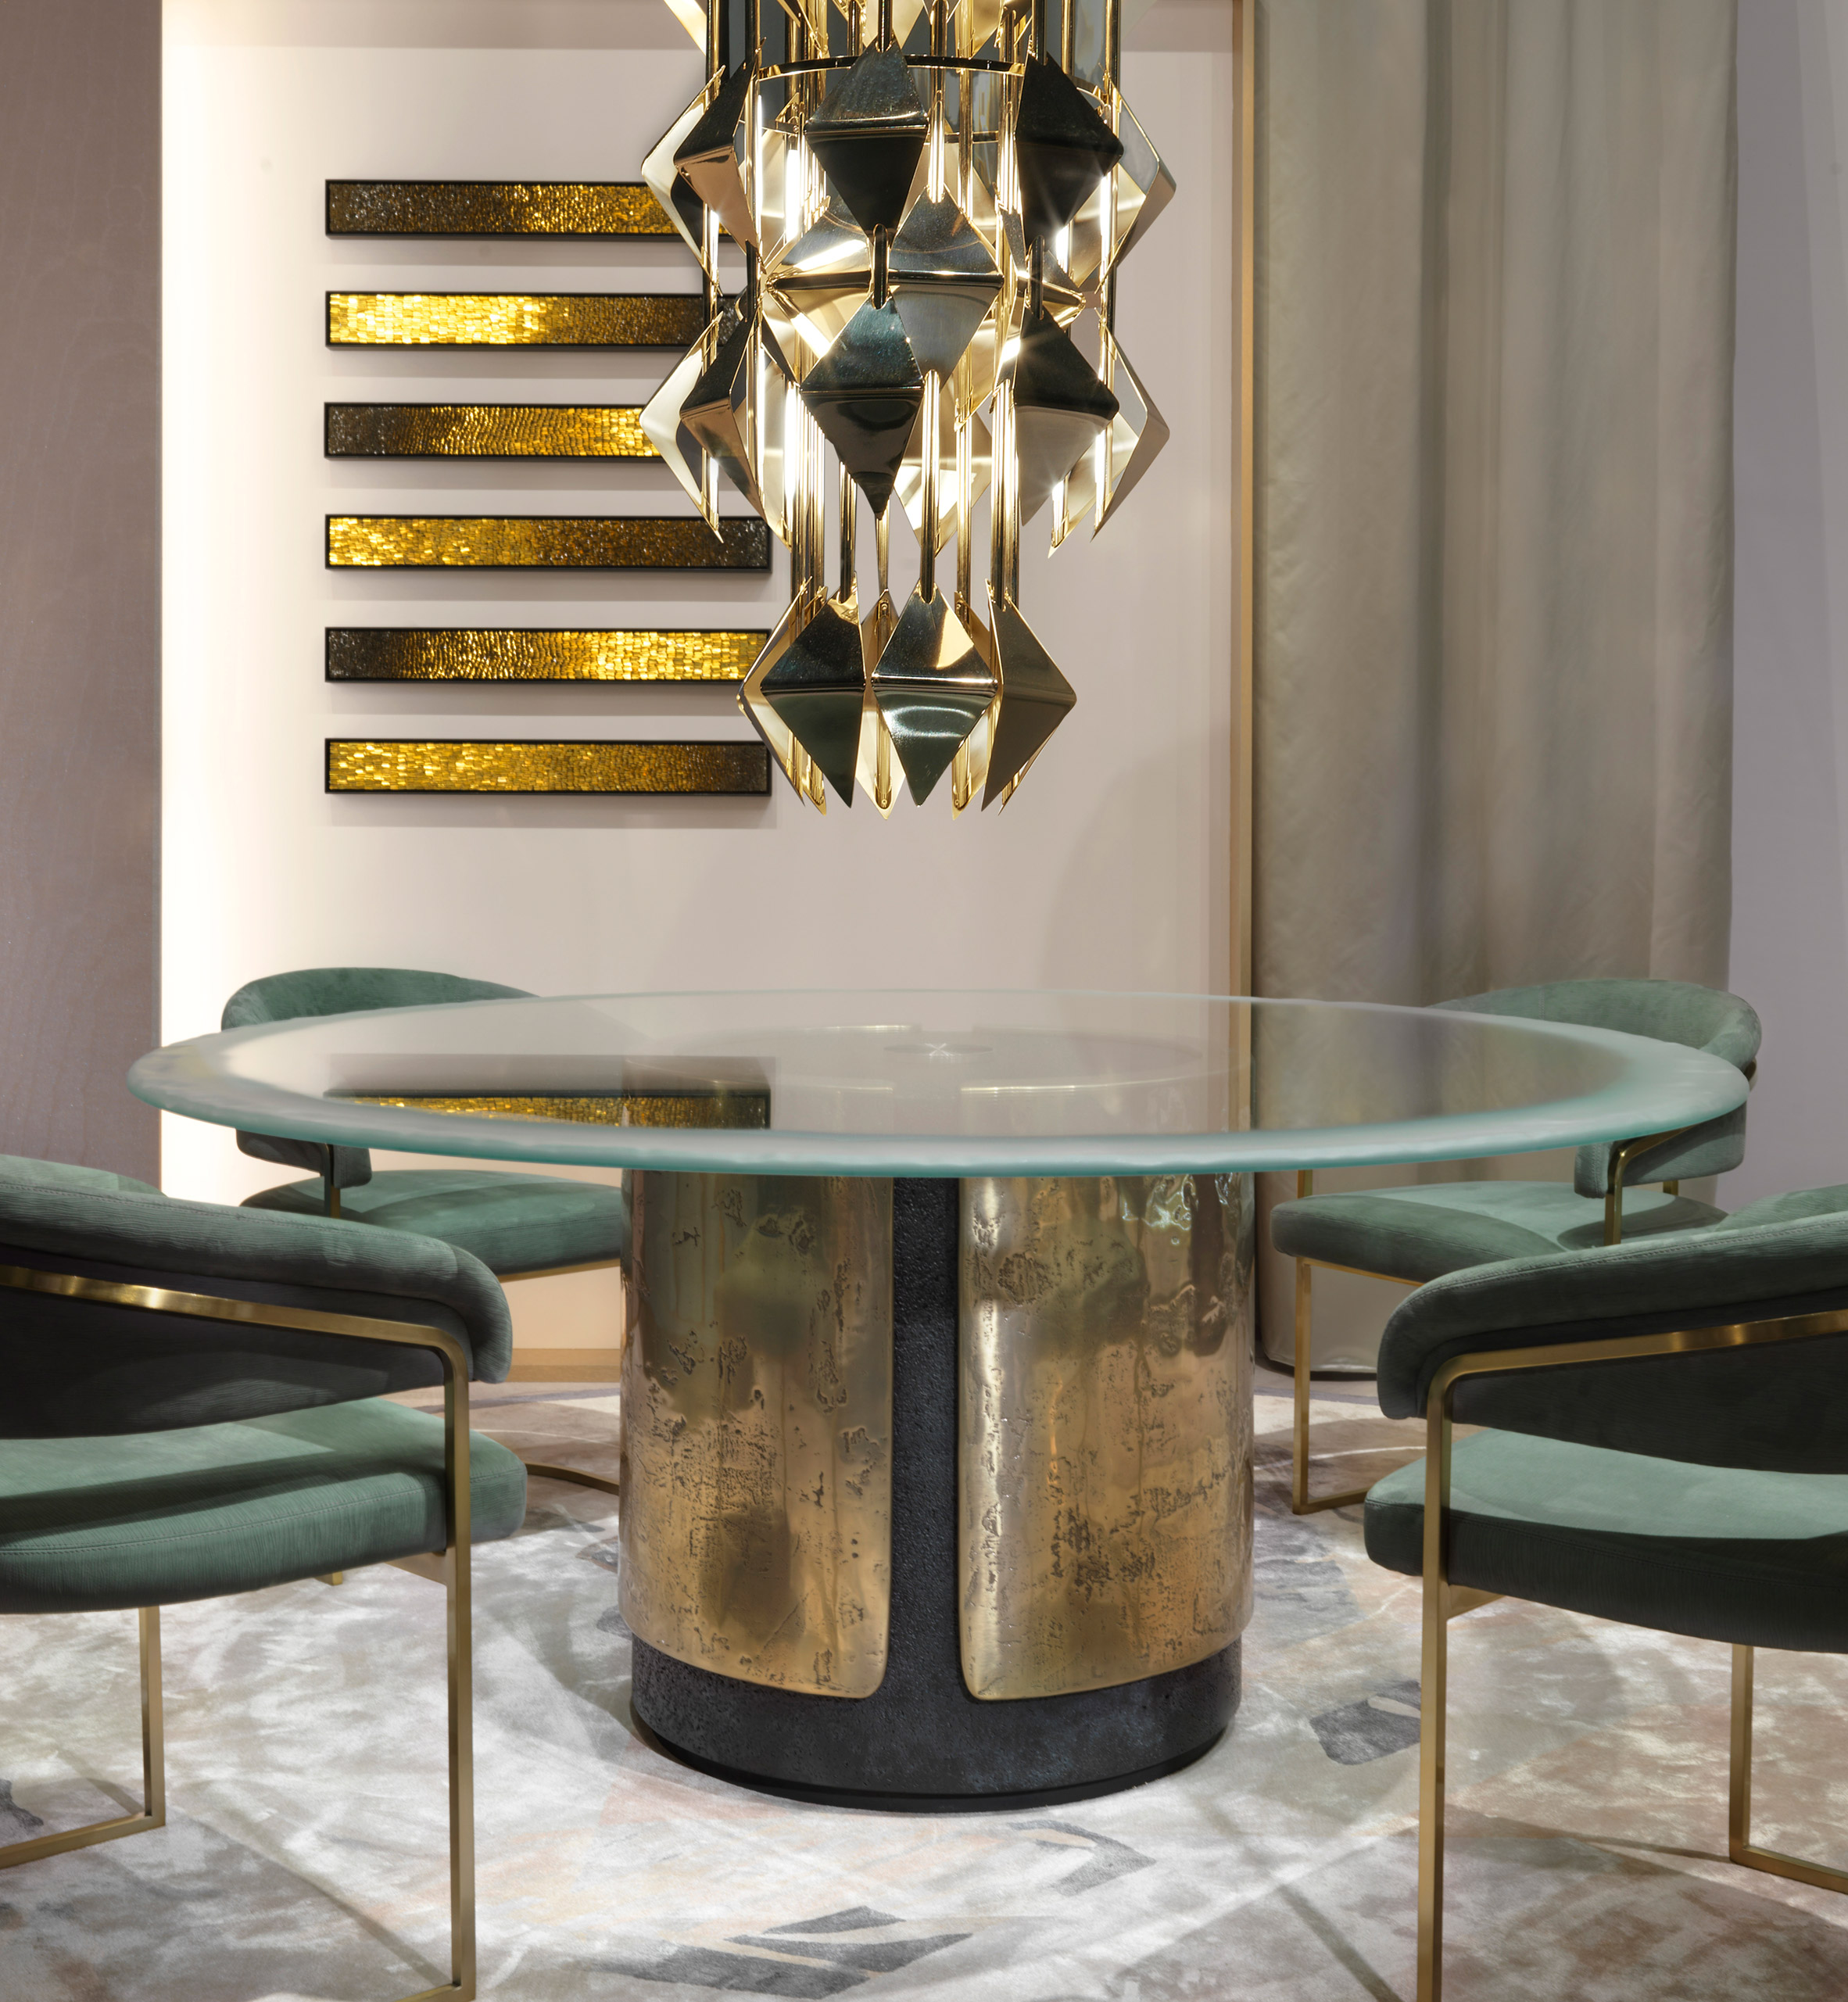 Draga & Aurel's Amos table from Visionnaire's Beauty collection